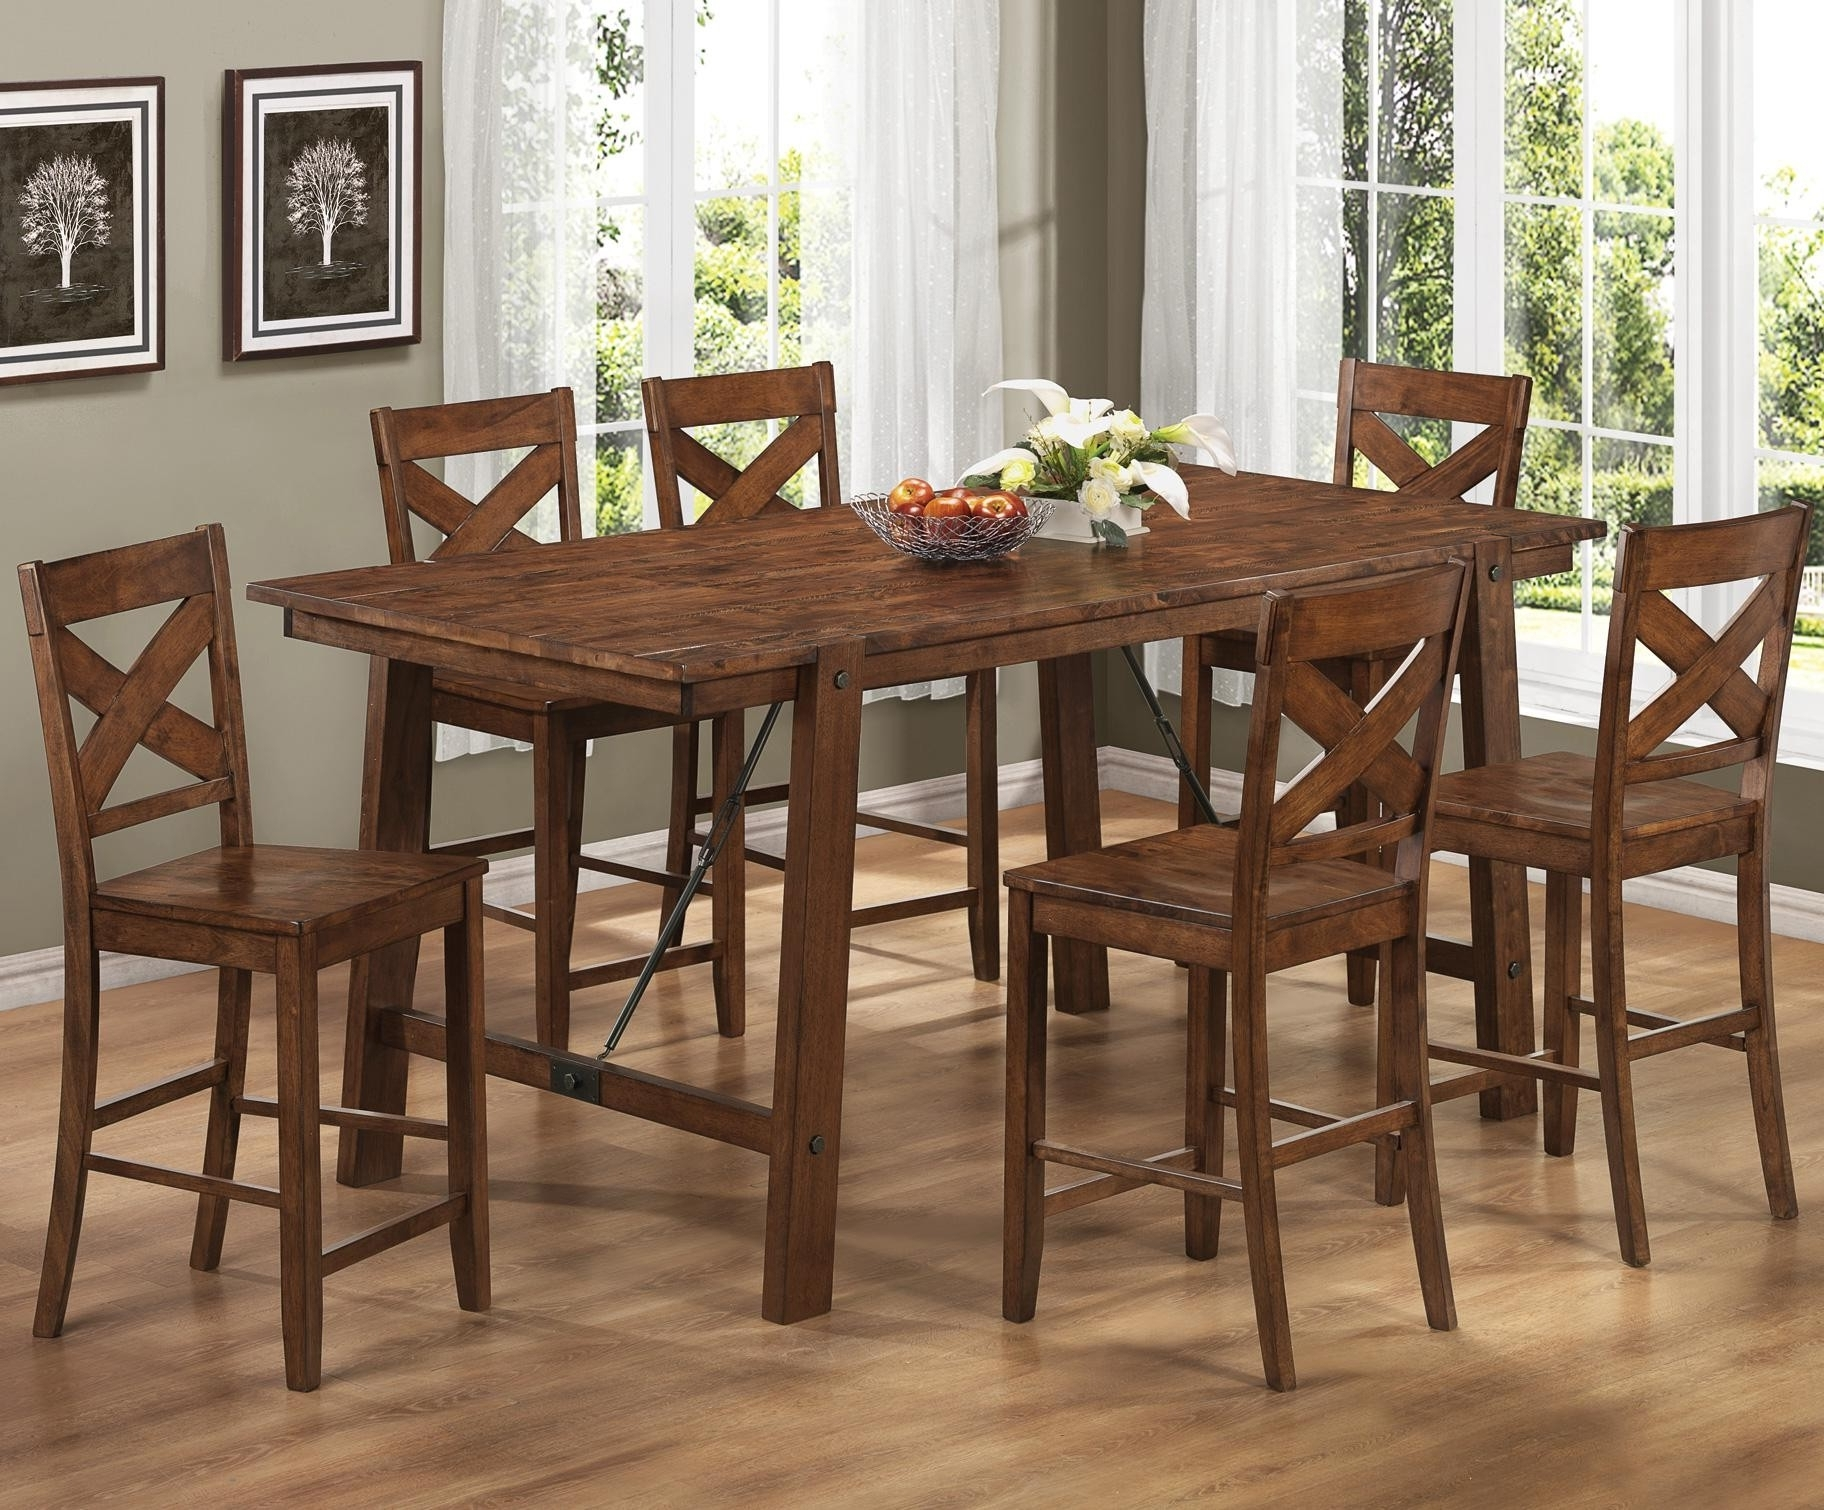 Dining Tables And Six Chairs With Trendy High Top Kitchen Table Sets Homesfeed, Kitchen Tables And Chairs (View 13 of 25)